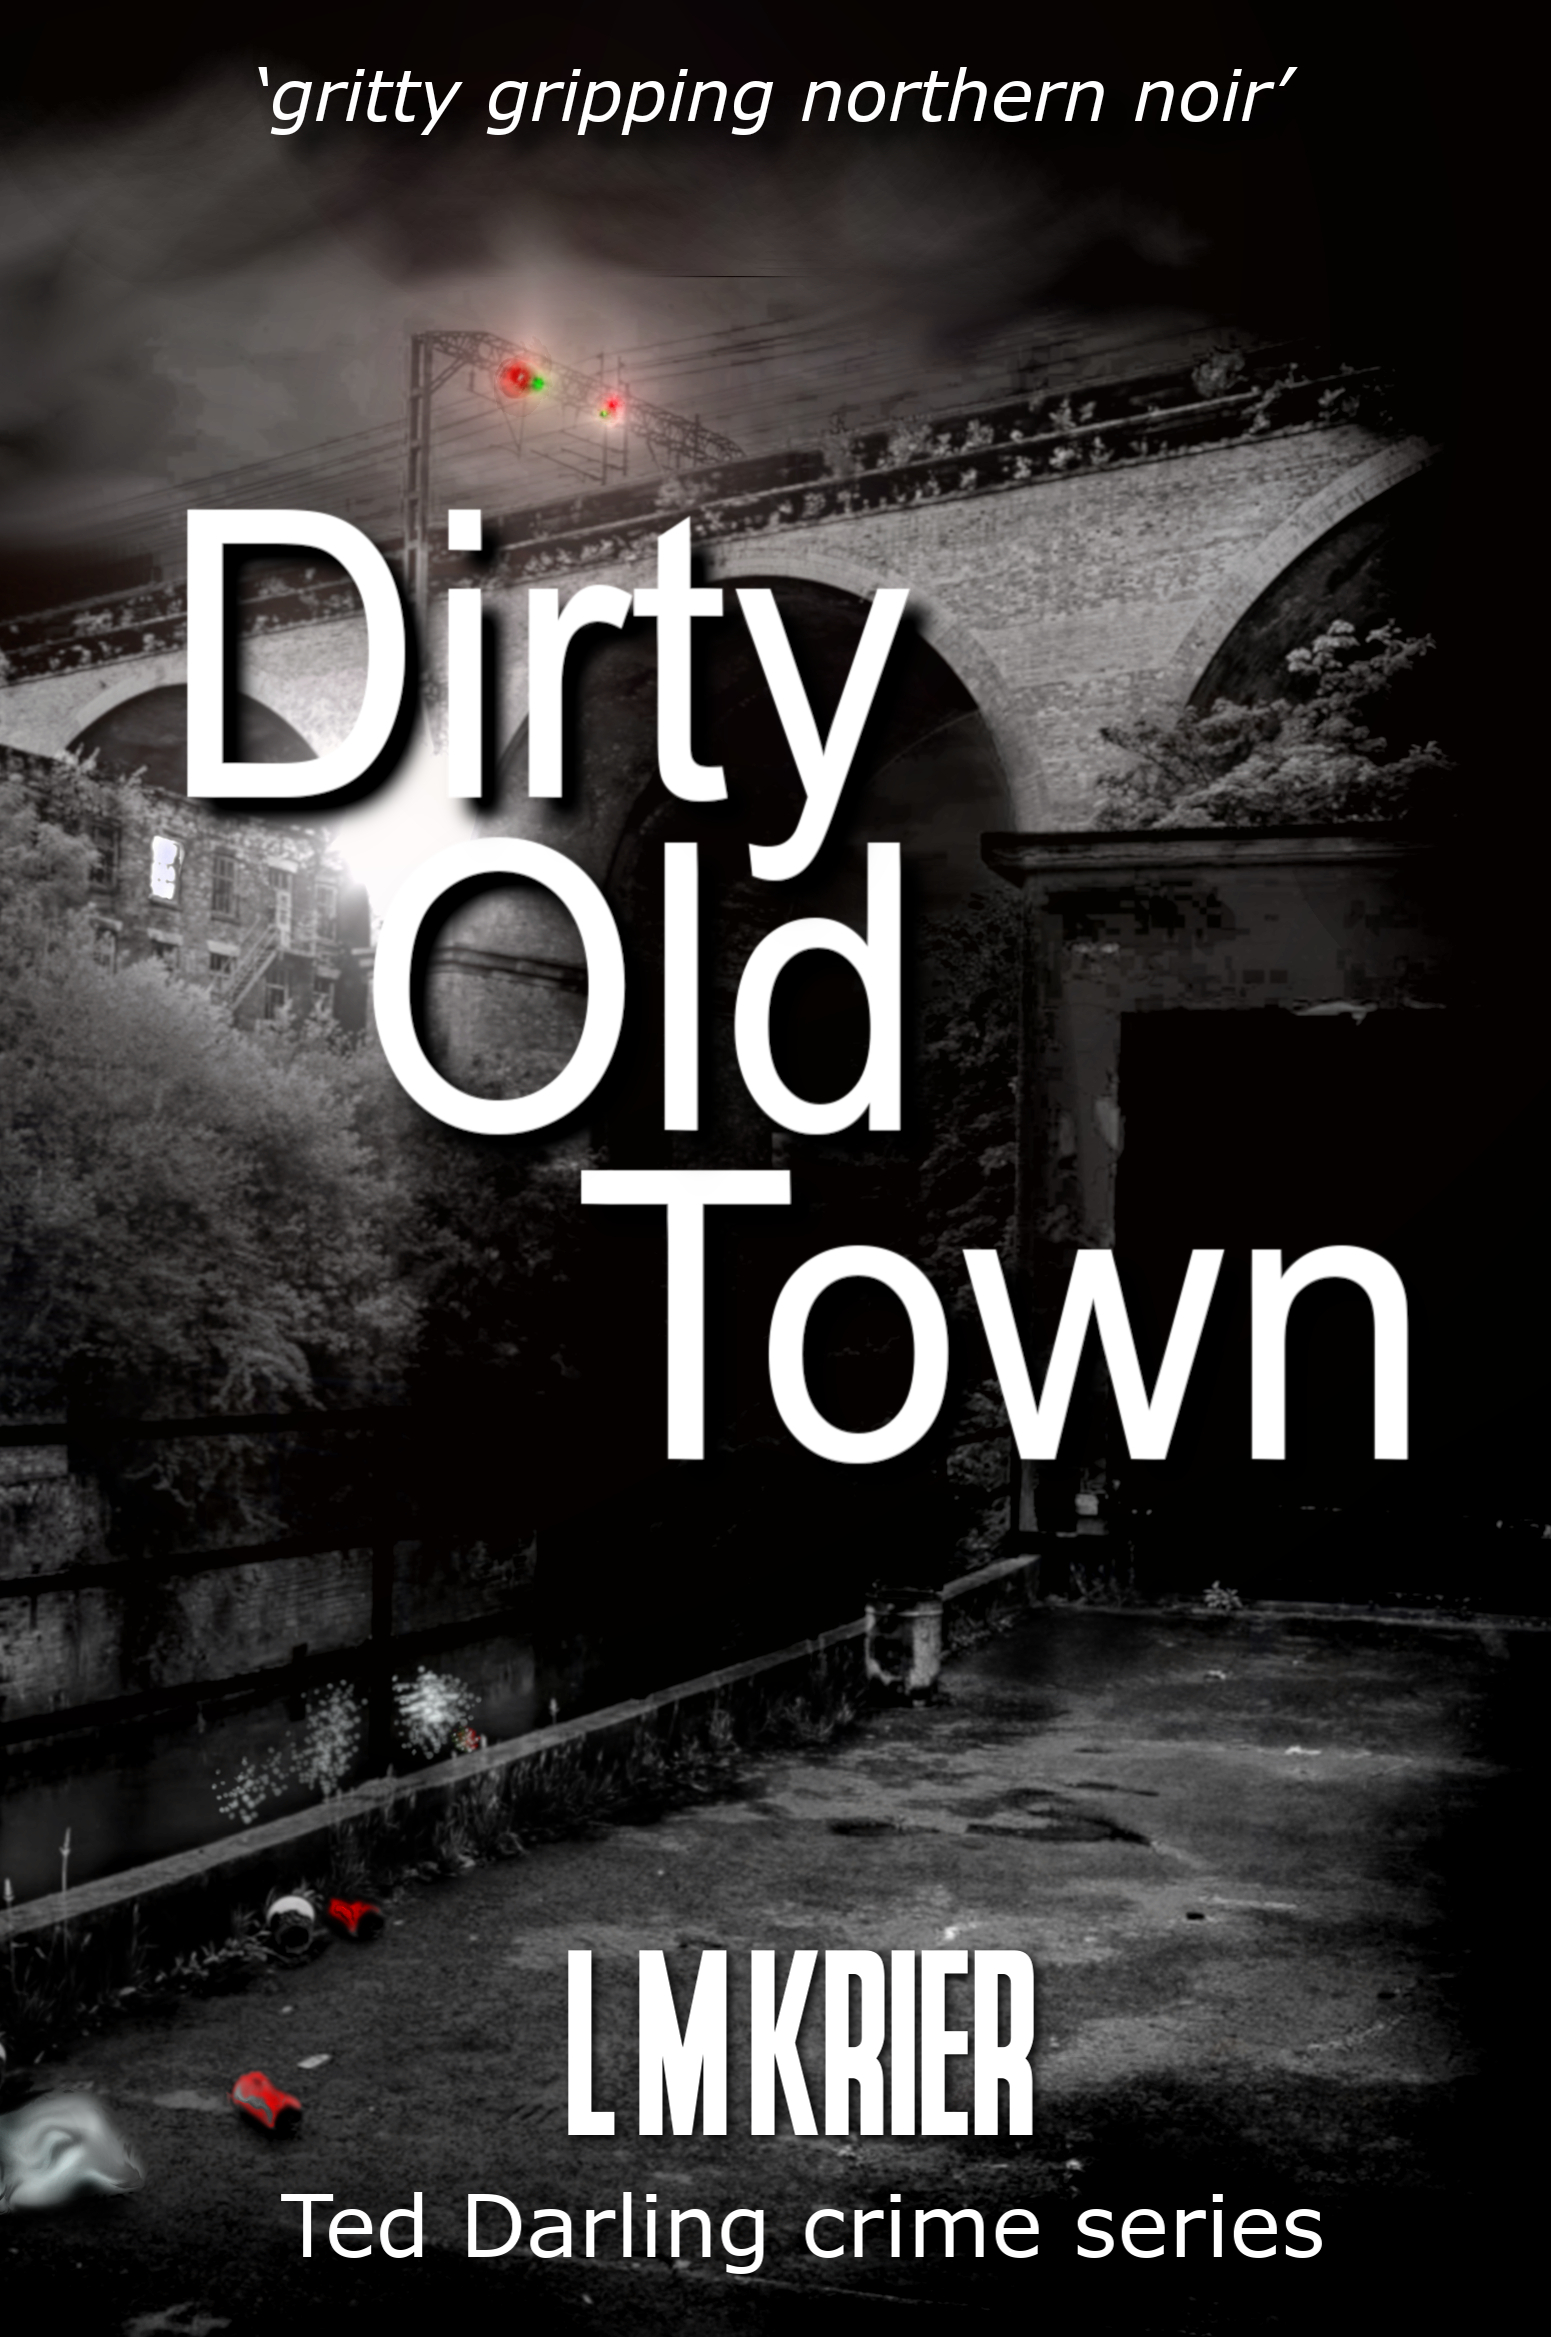 Ted-Darling-Crime-Series-Dirty-Old-Town#1-kindle